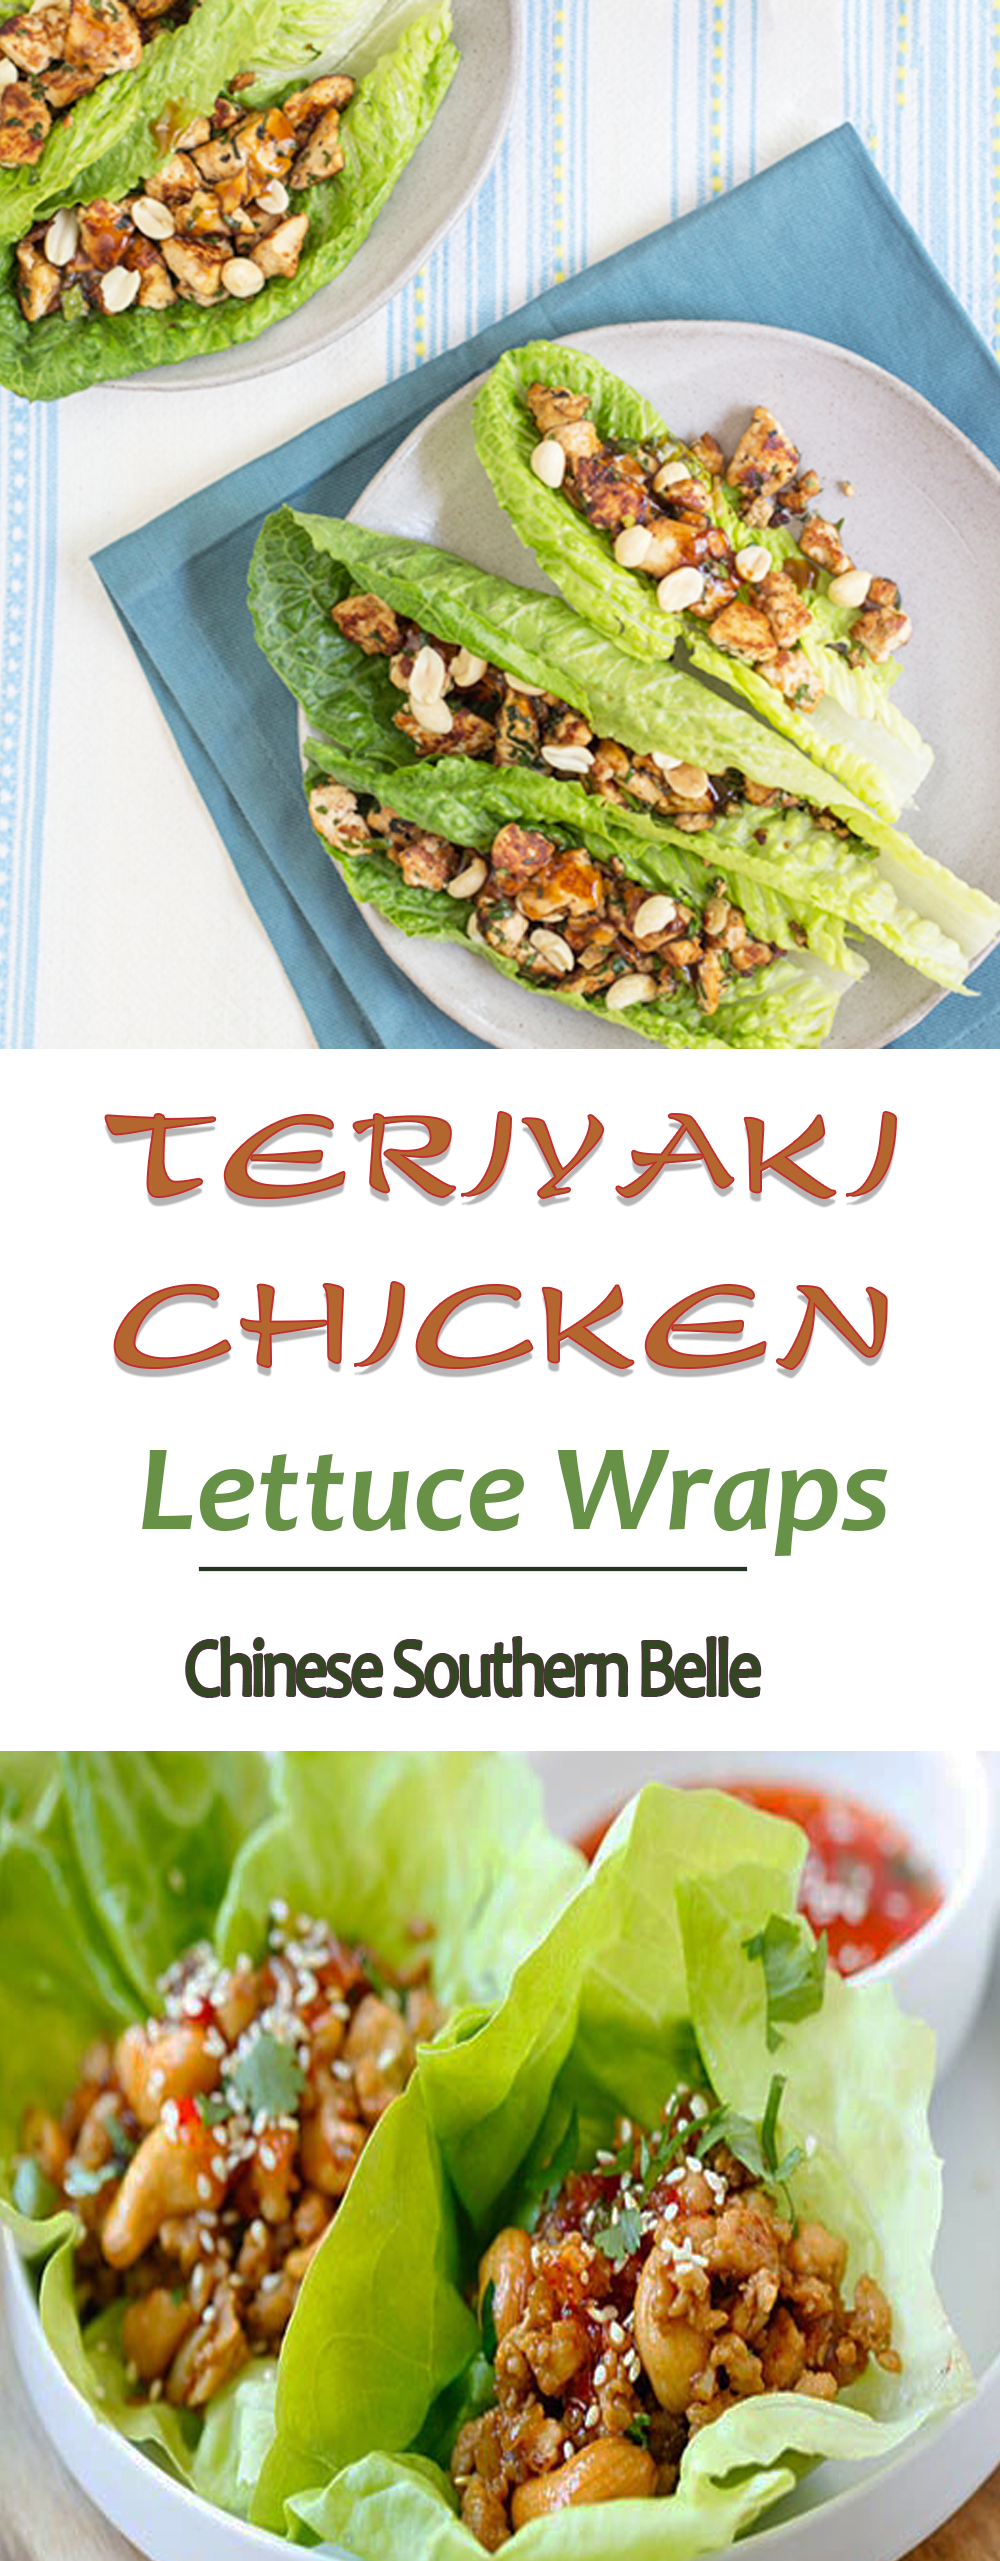 You don't have to go out to a fancy restaurant to enjoy authentic Asian low-carb lettuce wraps! Try my PF Chang's copycat recipe for Teriyaki Chicken Lettuce Wraps. Let your taste buds set sail on these boats of nutrients! #easyappetizers #under30minutes #healthyrecipes #teriyakichicken #summerappetizers